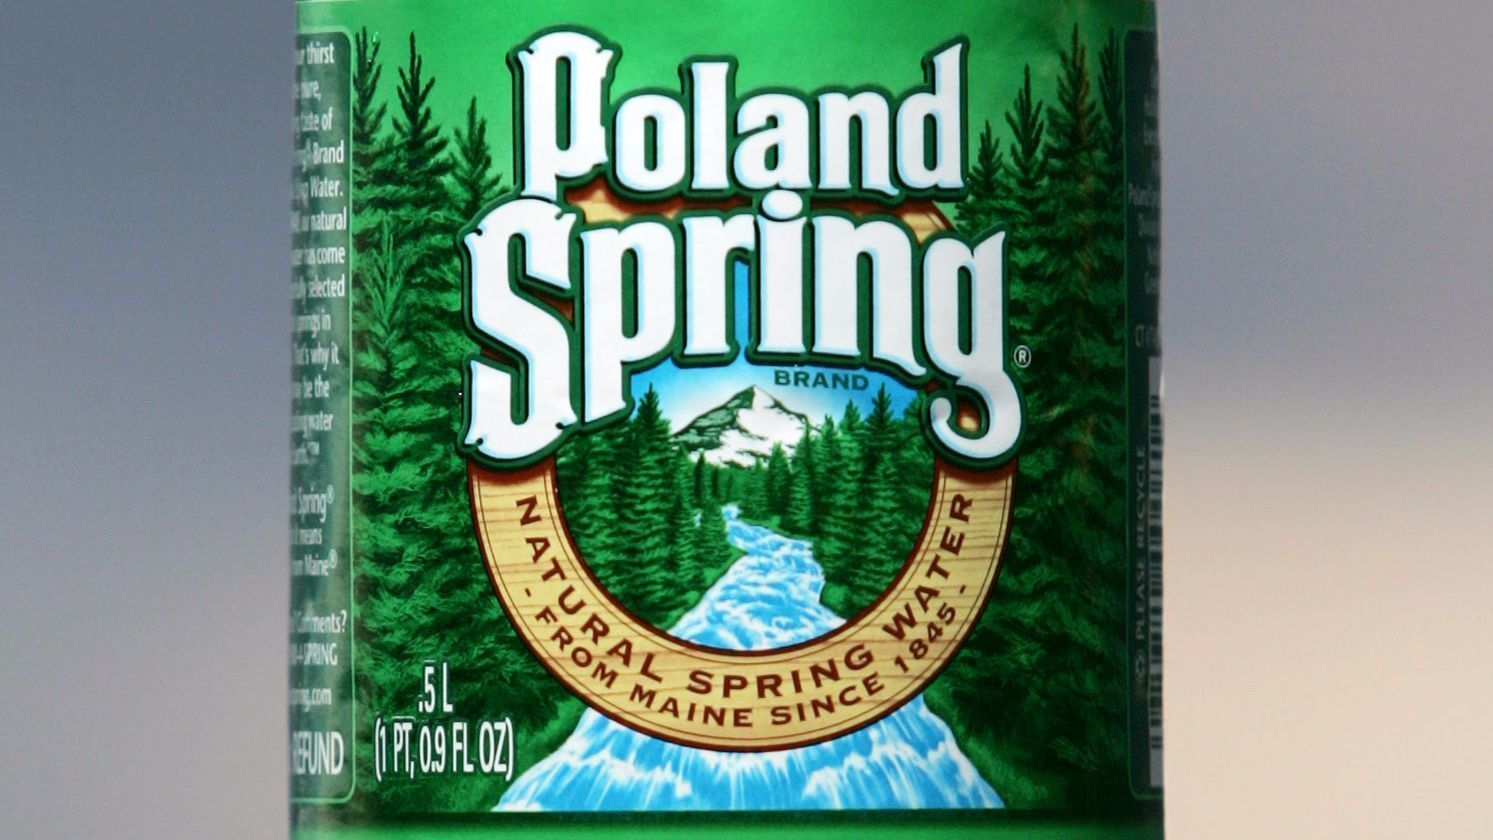 'Not one drop' of Poland Spring bottled water is from a spring, lawsuit says